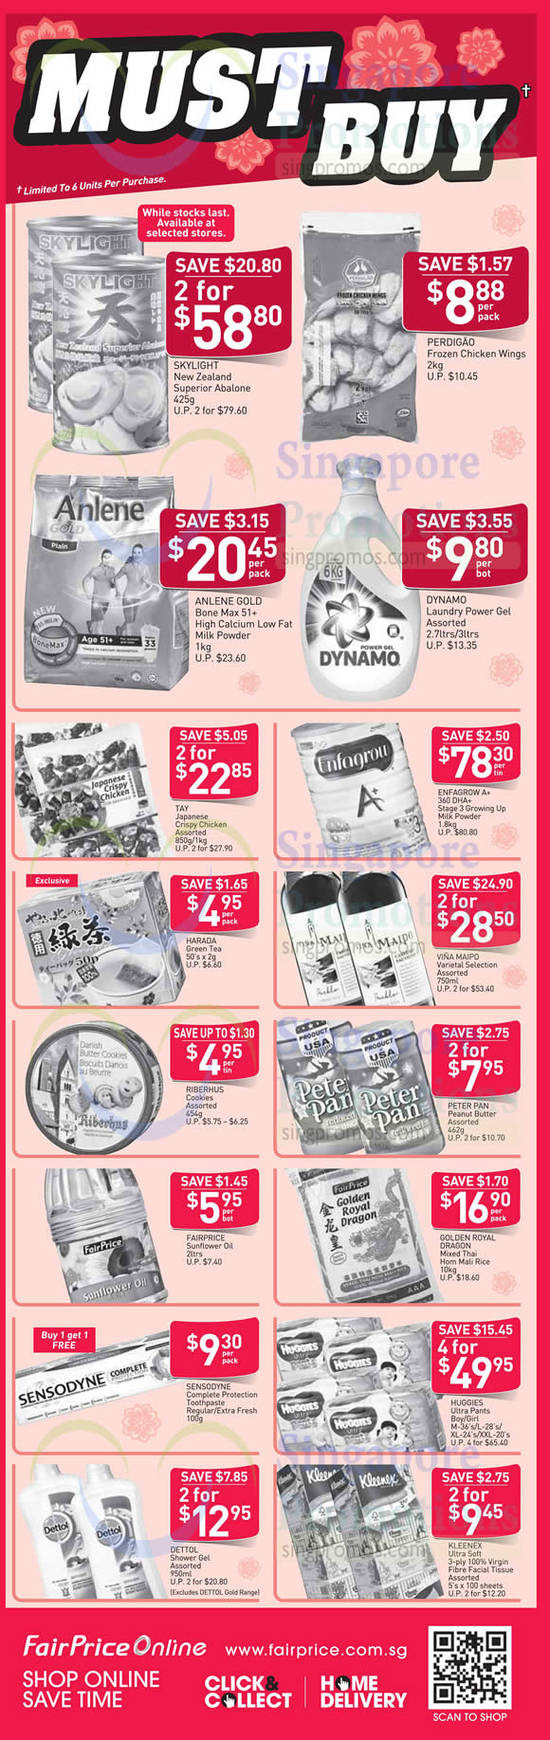 Fairprice MustBuy Deals 4 Feb 2016